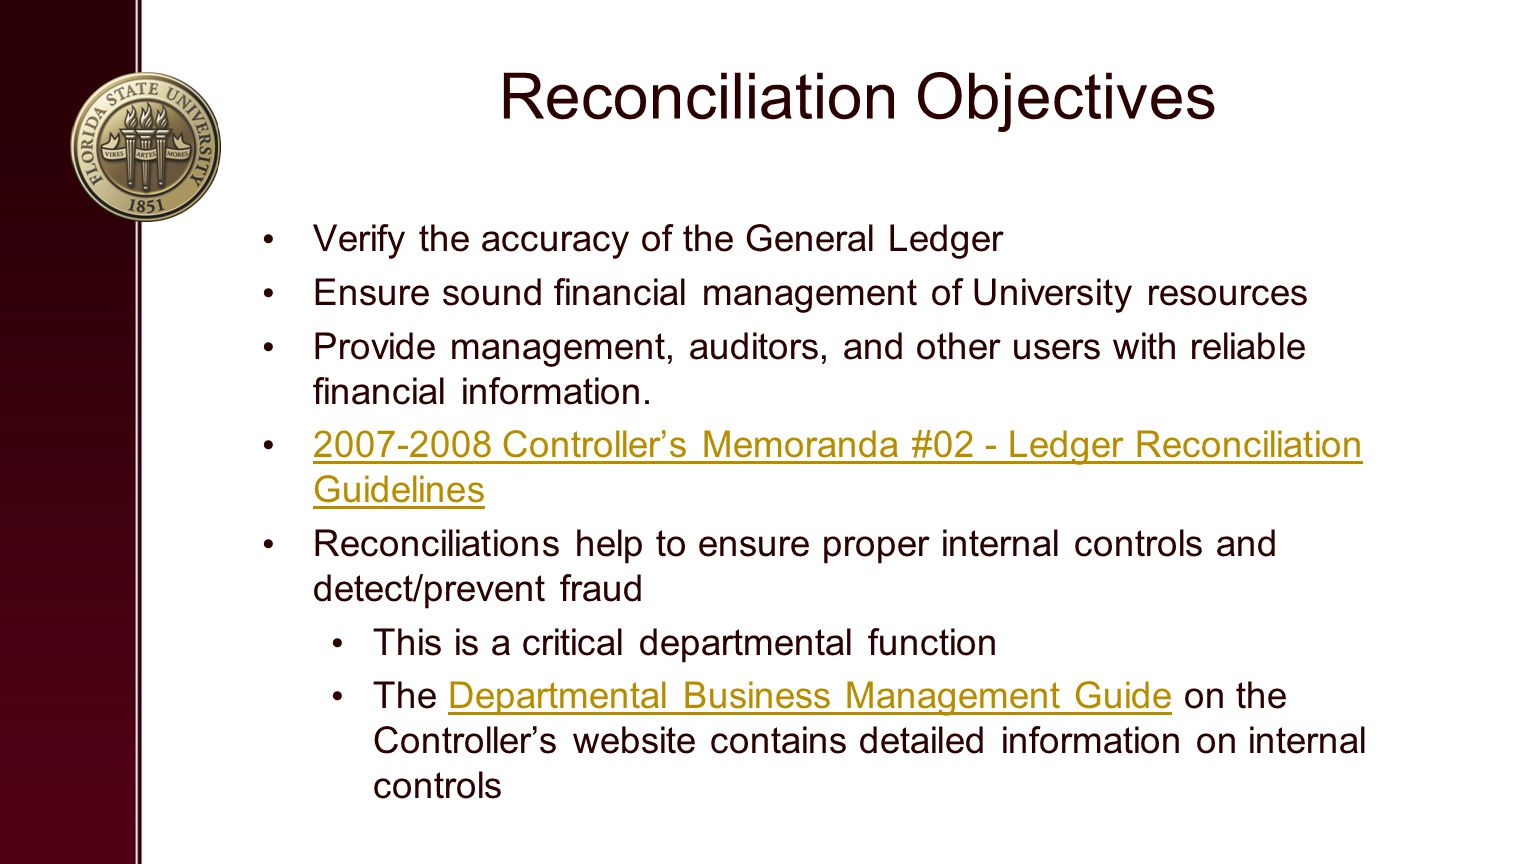 Reconciliation Objectives Verify the accuracy of the General Ledger Ensure sound financial management of University resources Provide management, auditors, and other users with reliable financial information.